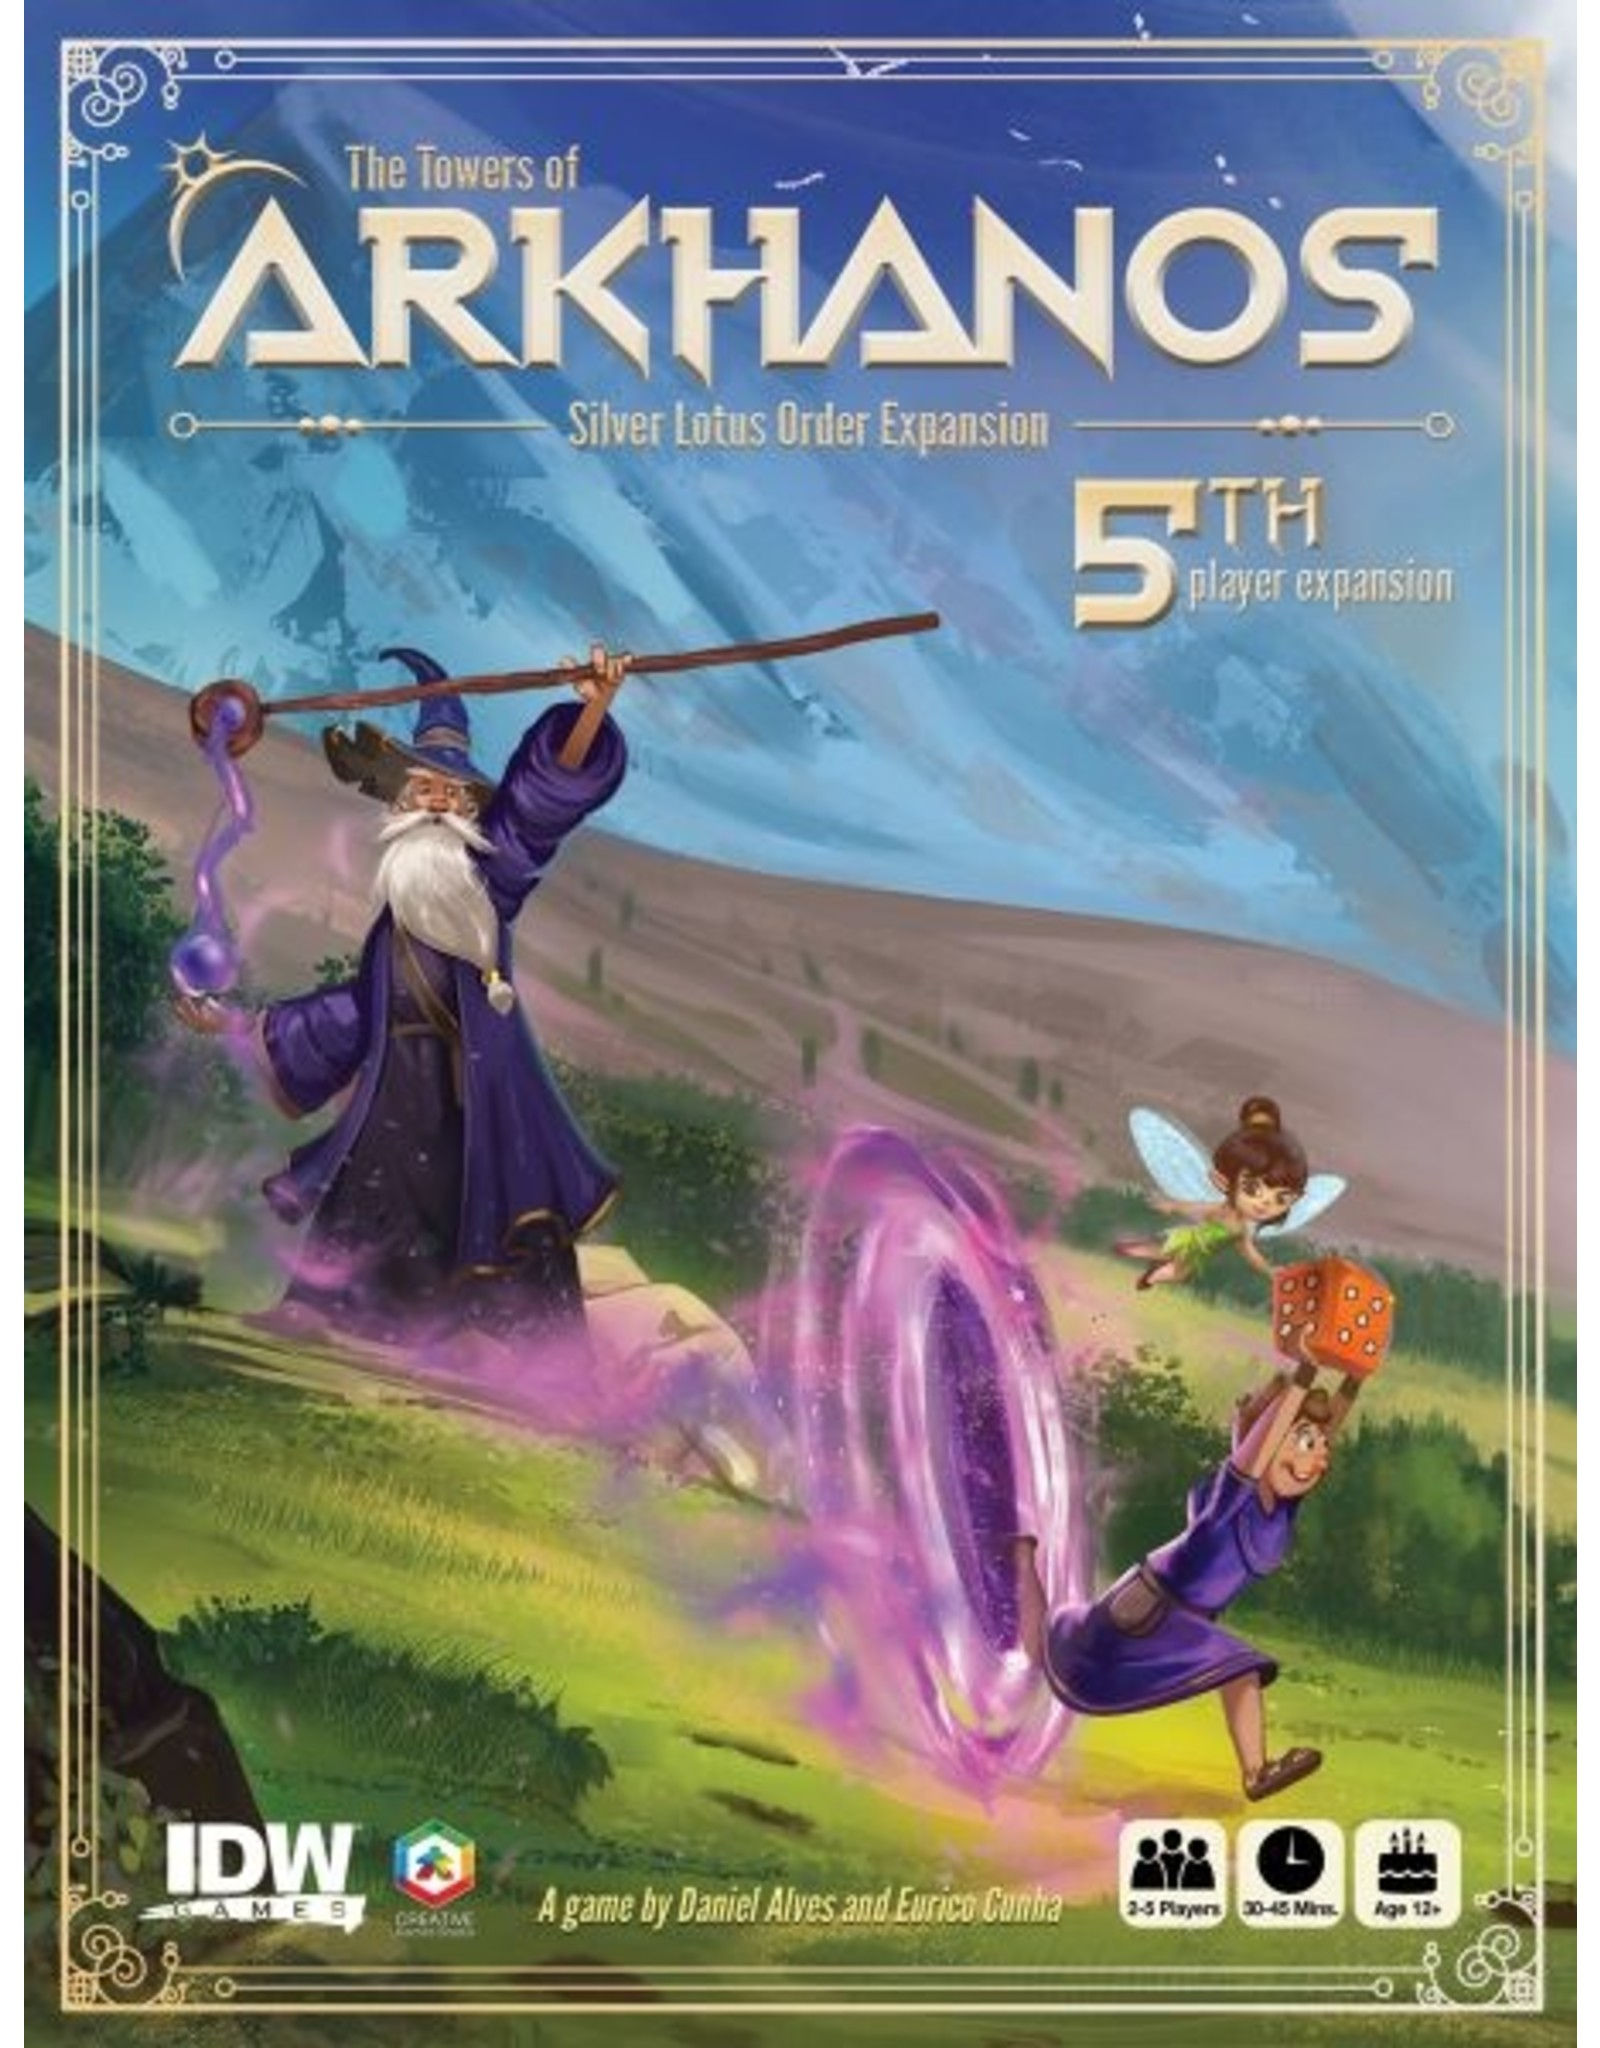 THE TOWERS OF ARKHANOS SILVER LOTUS ORDER EXPANSION